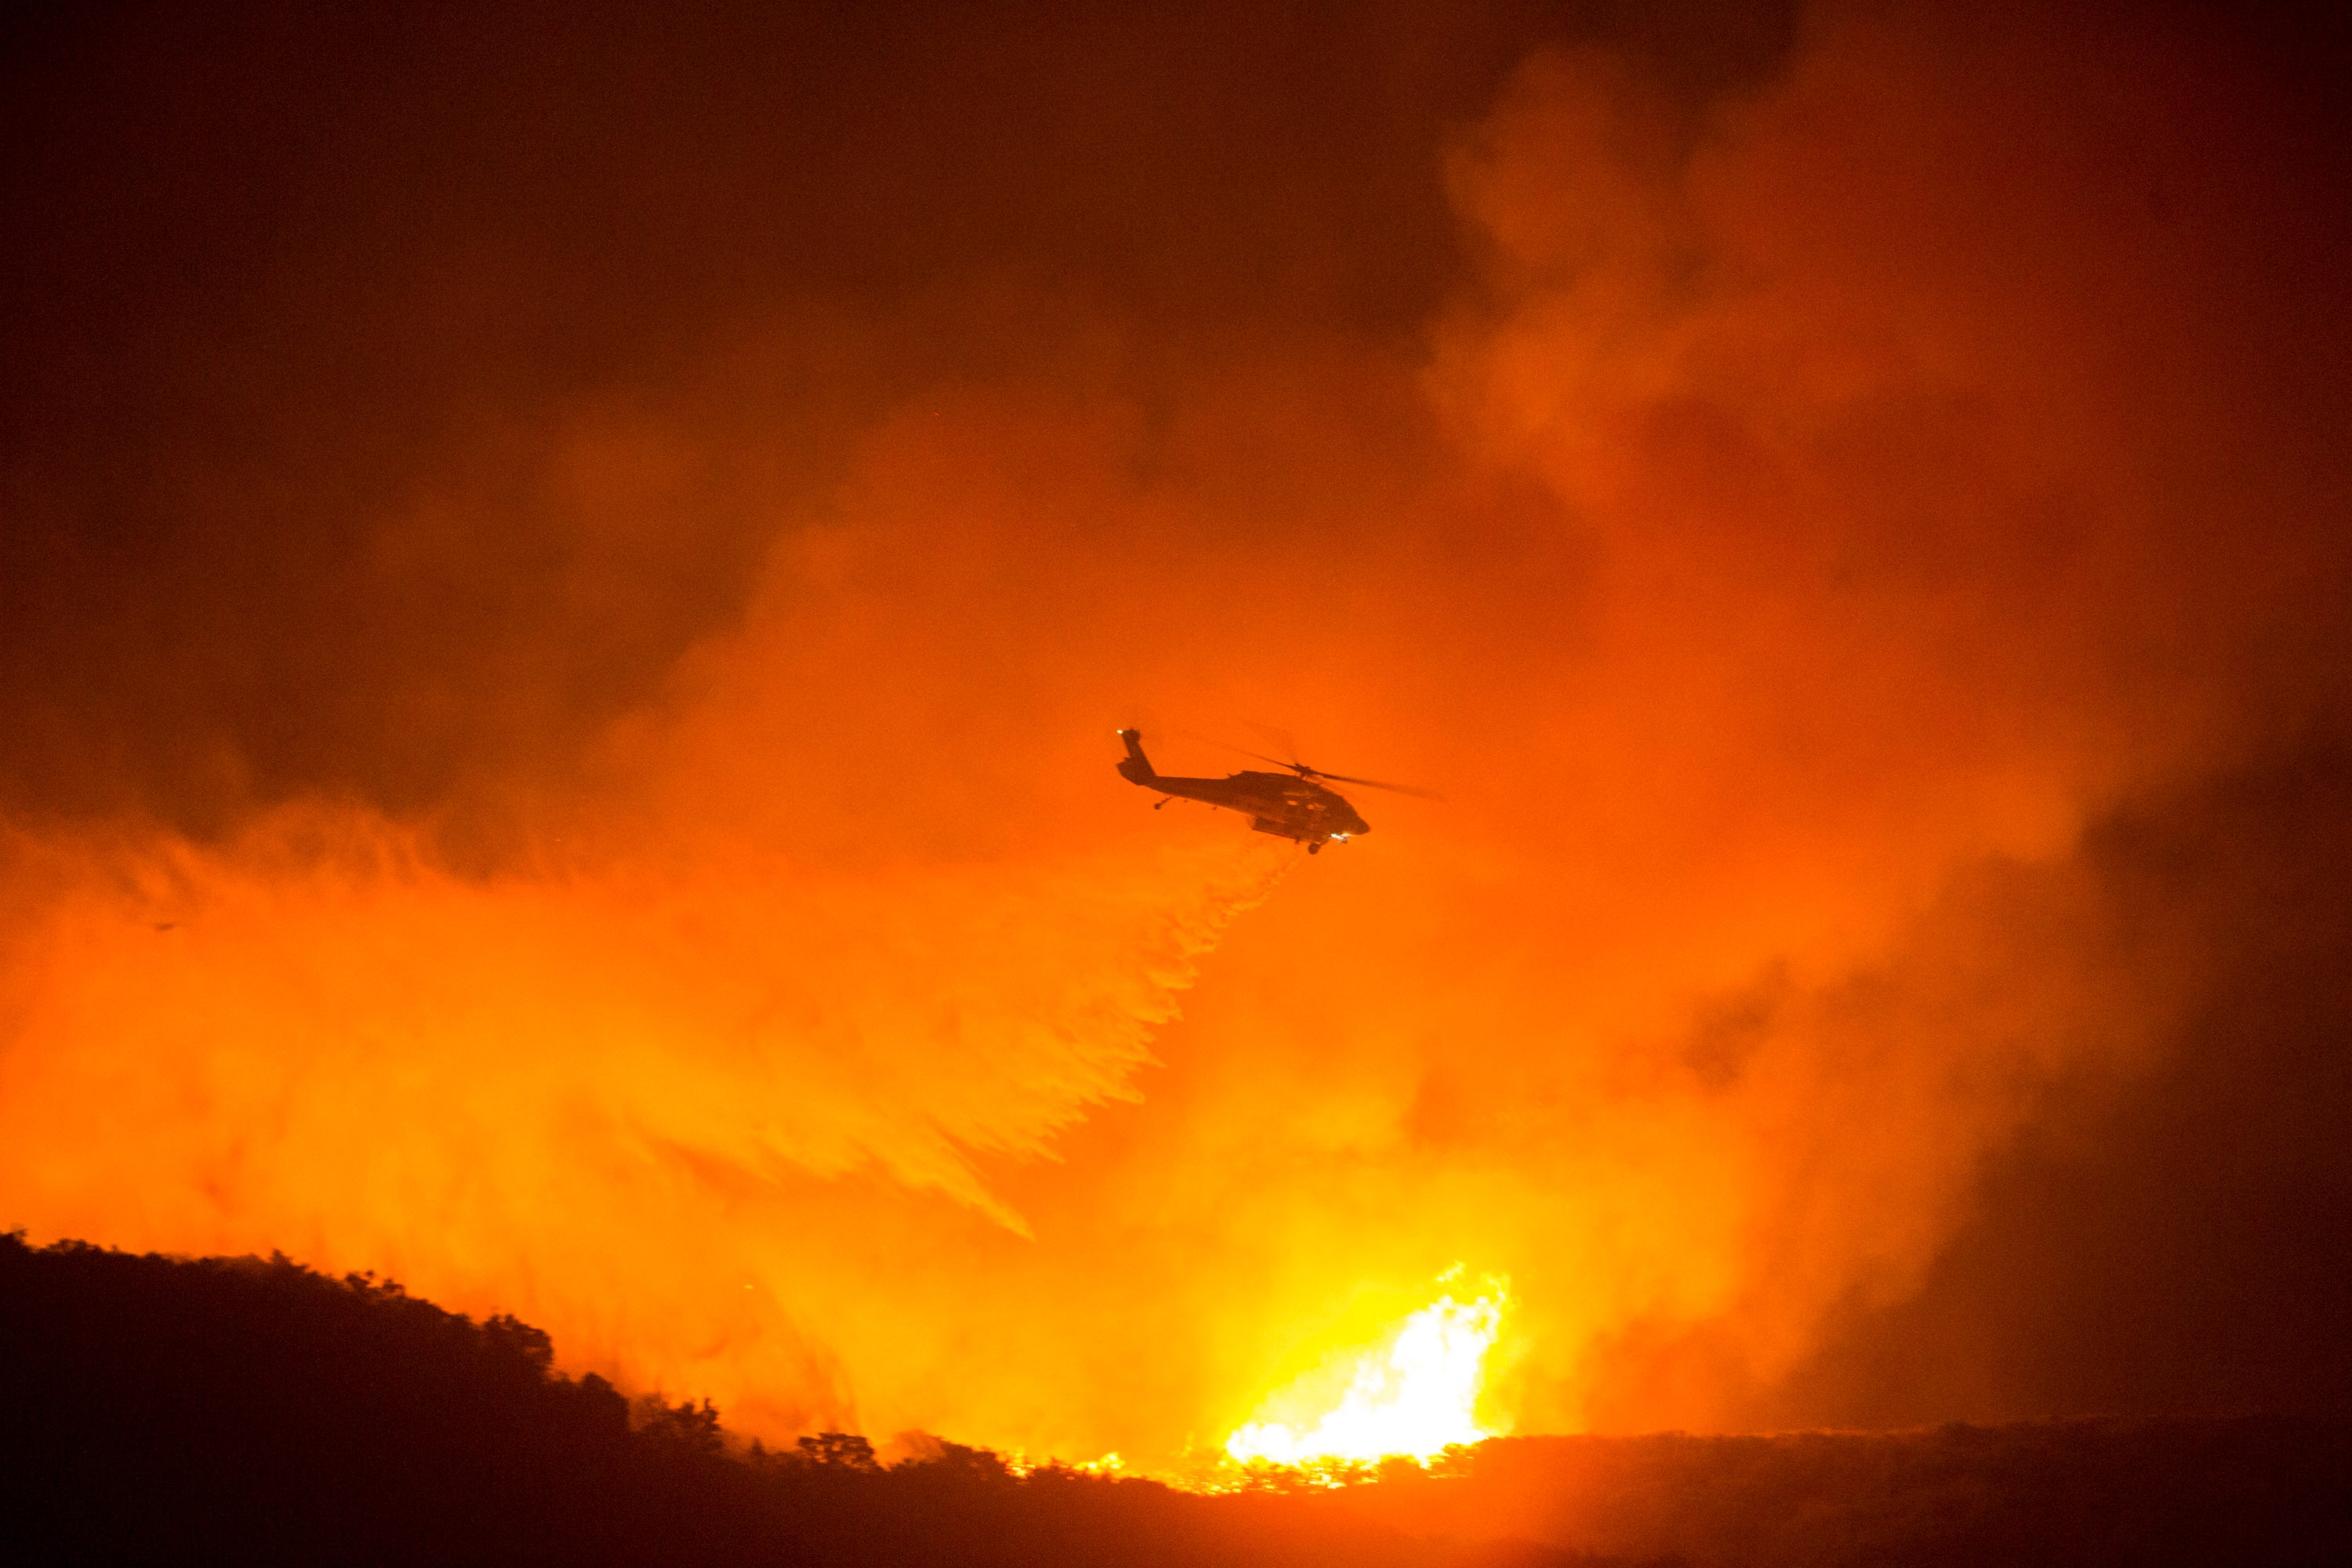 Friday to bring hot, dry forecast as  hard to predict  Lake Fire grows in Southern California